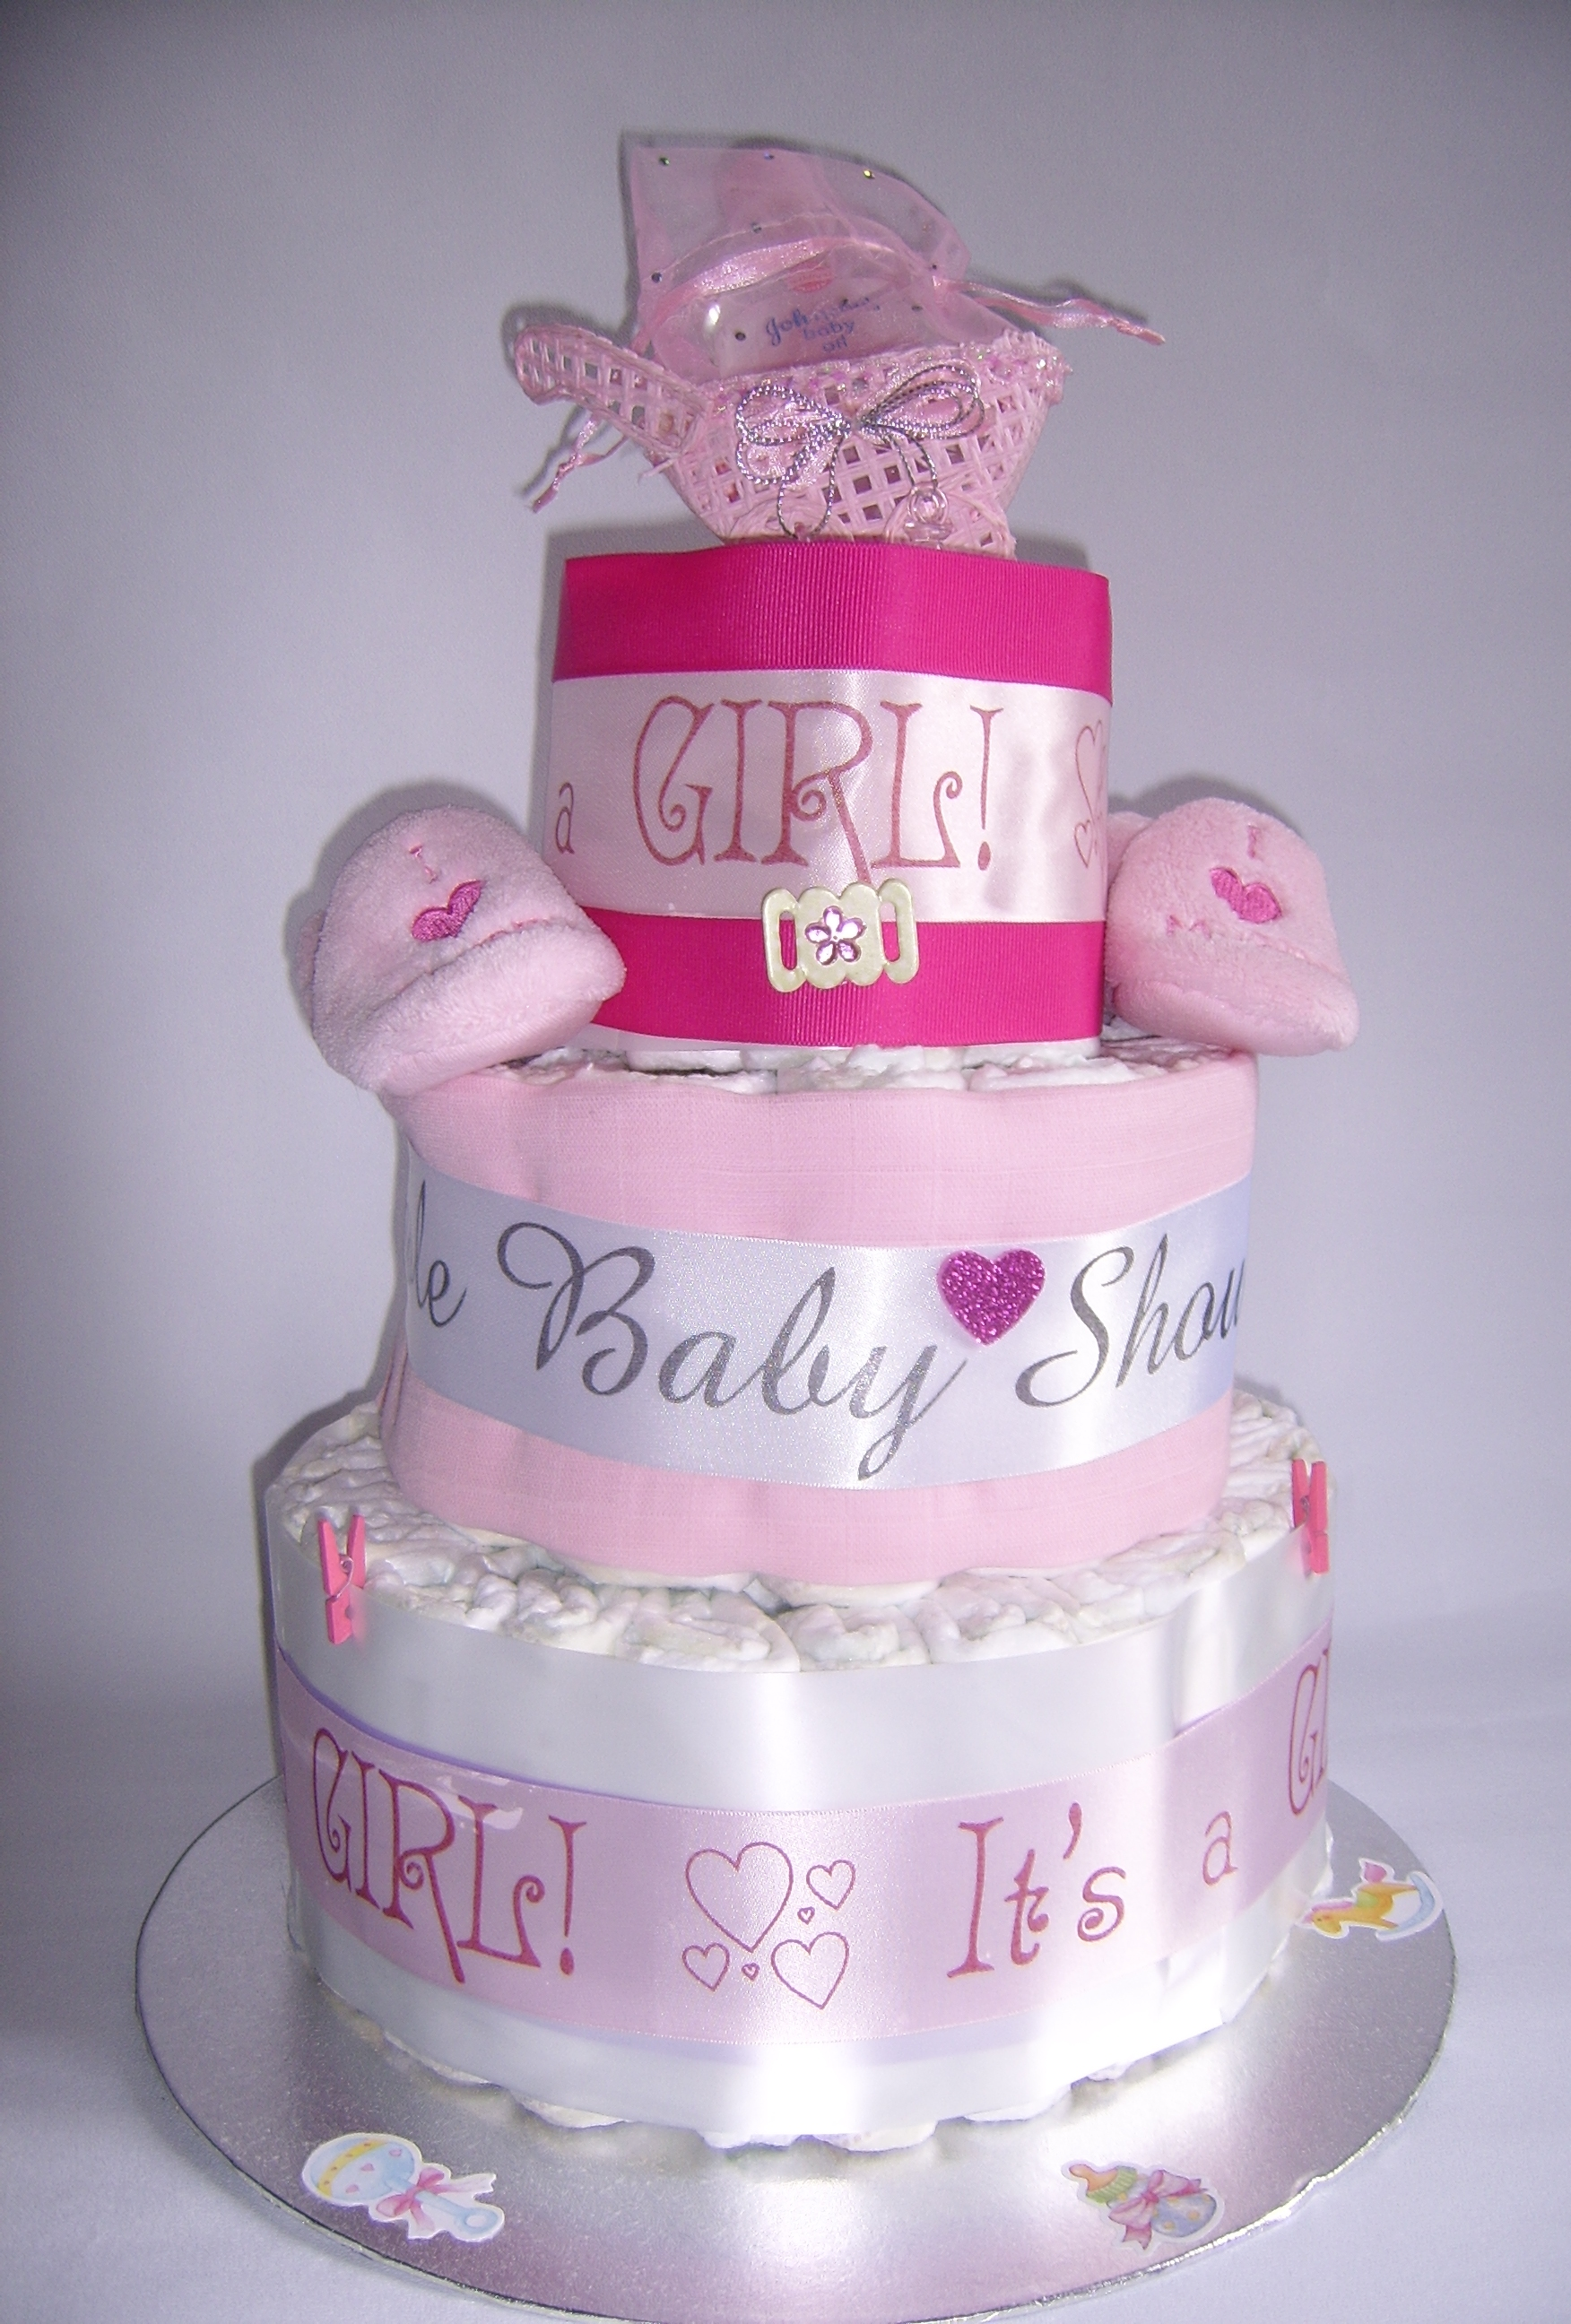 Baby shower - Wikipedia, la enciclopedia libre